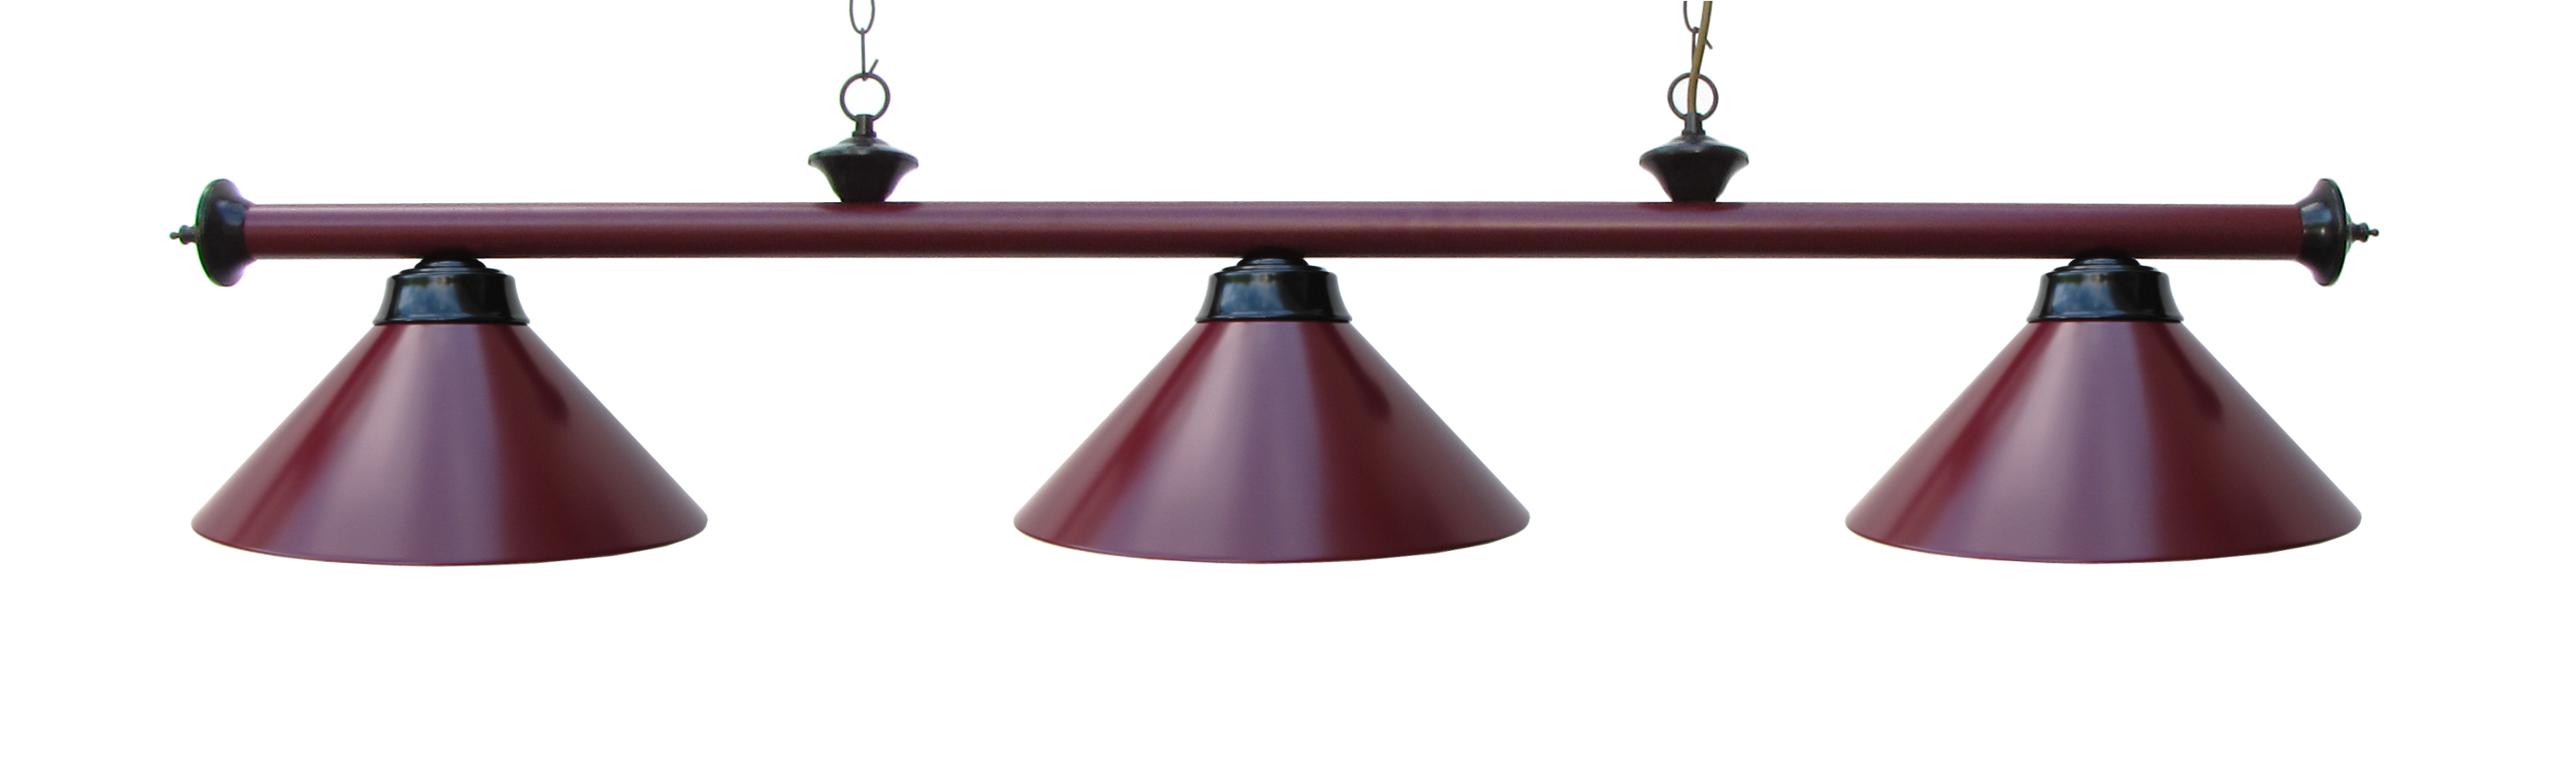 "59"" Pool Table Light Pool Table Light Burgundy Black With Metal Shades by"